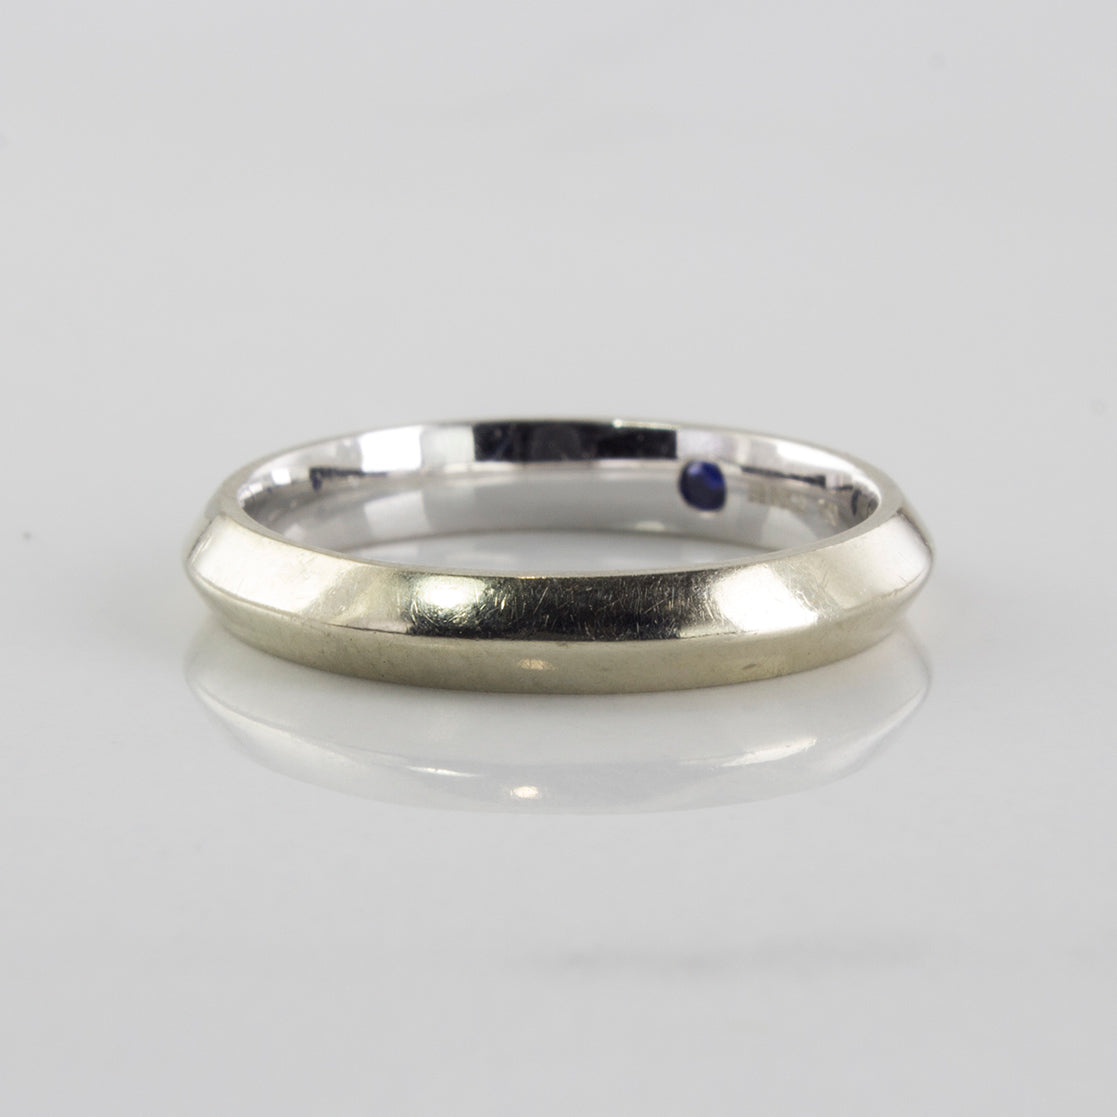 'Birks' White Gold Band With Hidden Sapphire | SZ 4.25 |